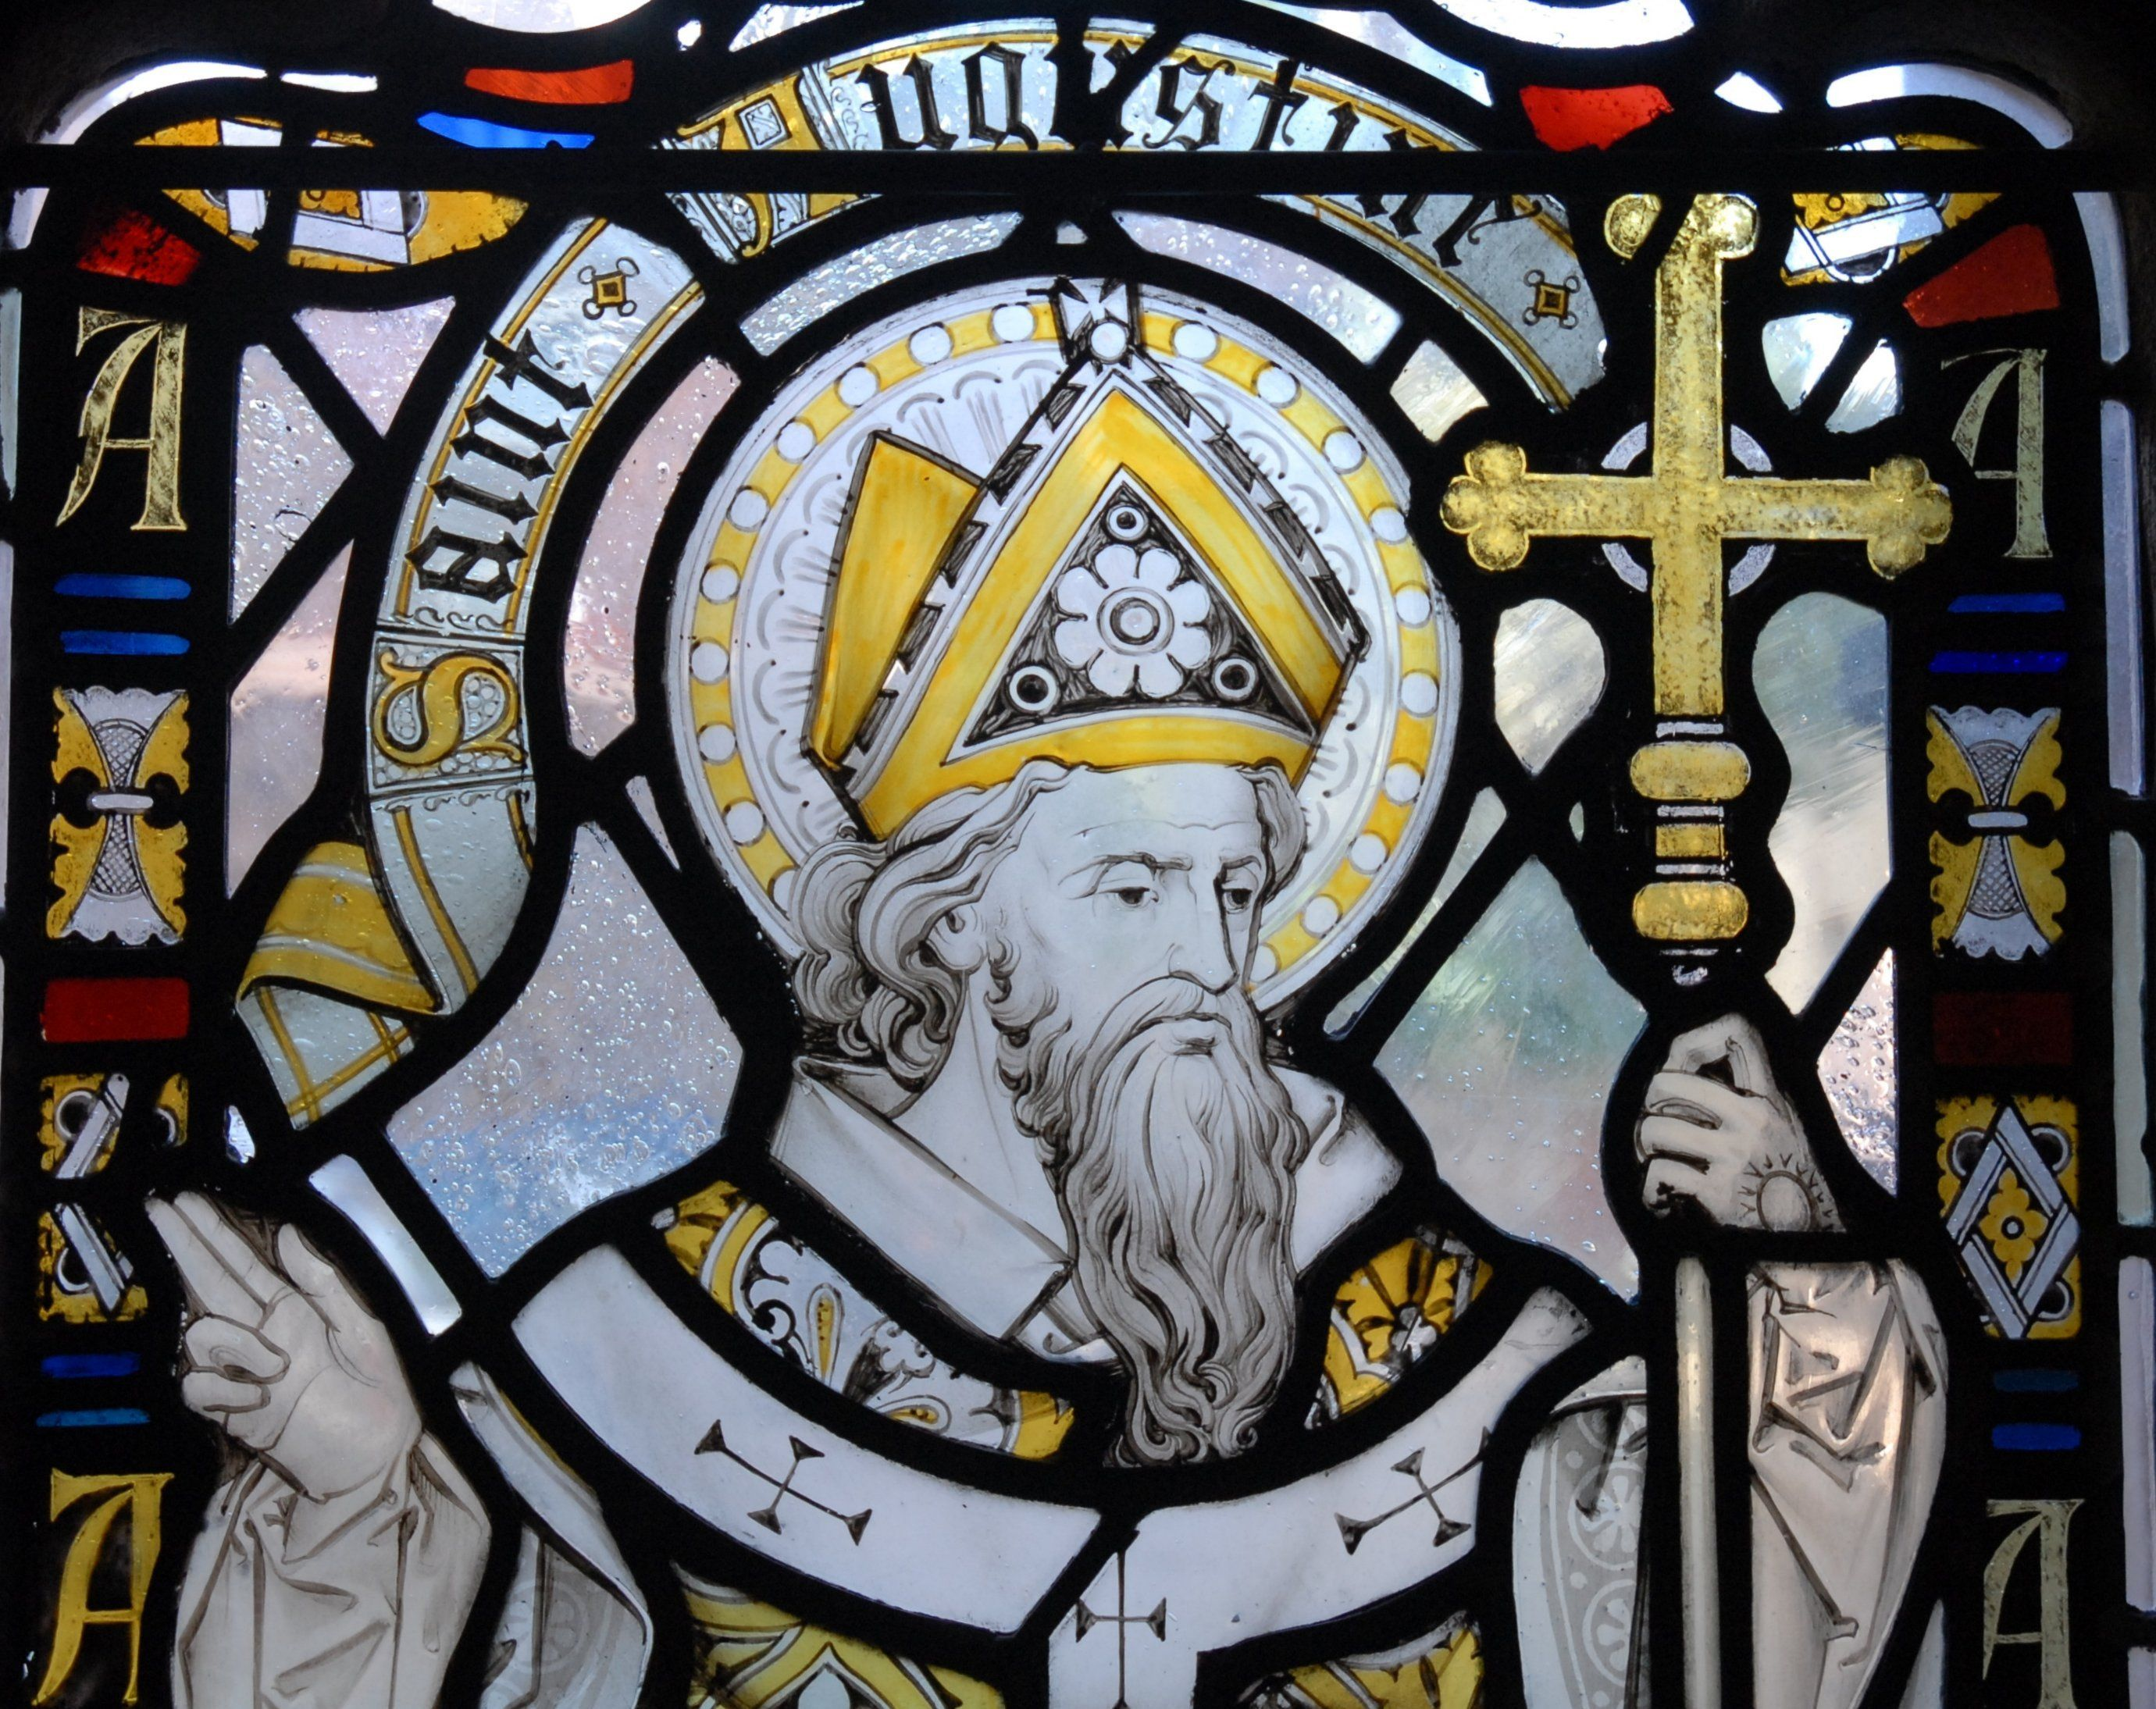 augustine on god and time essays Augustine had not, at that time, considered that he should have been grieving for his own salvation there was a sadness for which he has not cried tears for himself as he was studying, he was growing spiritually and increasing his understanding of god.